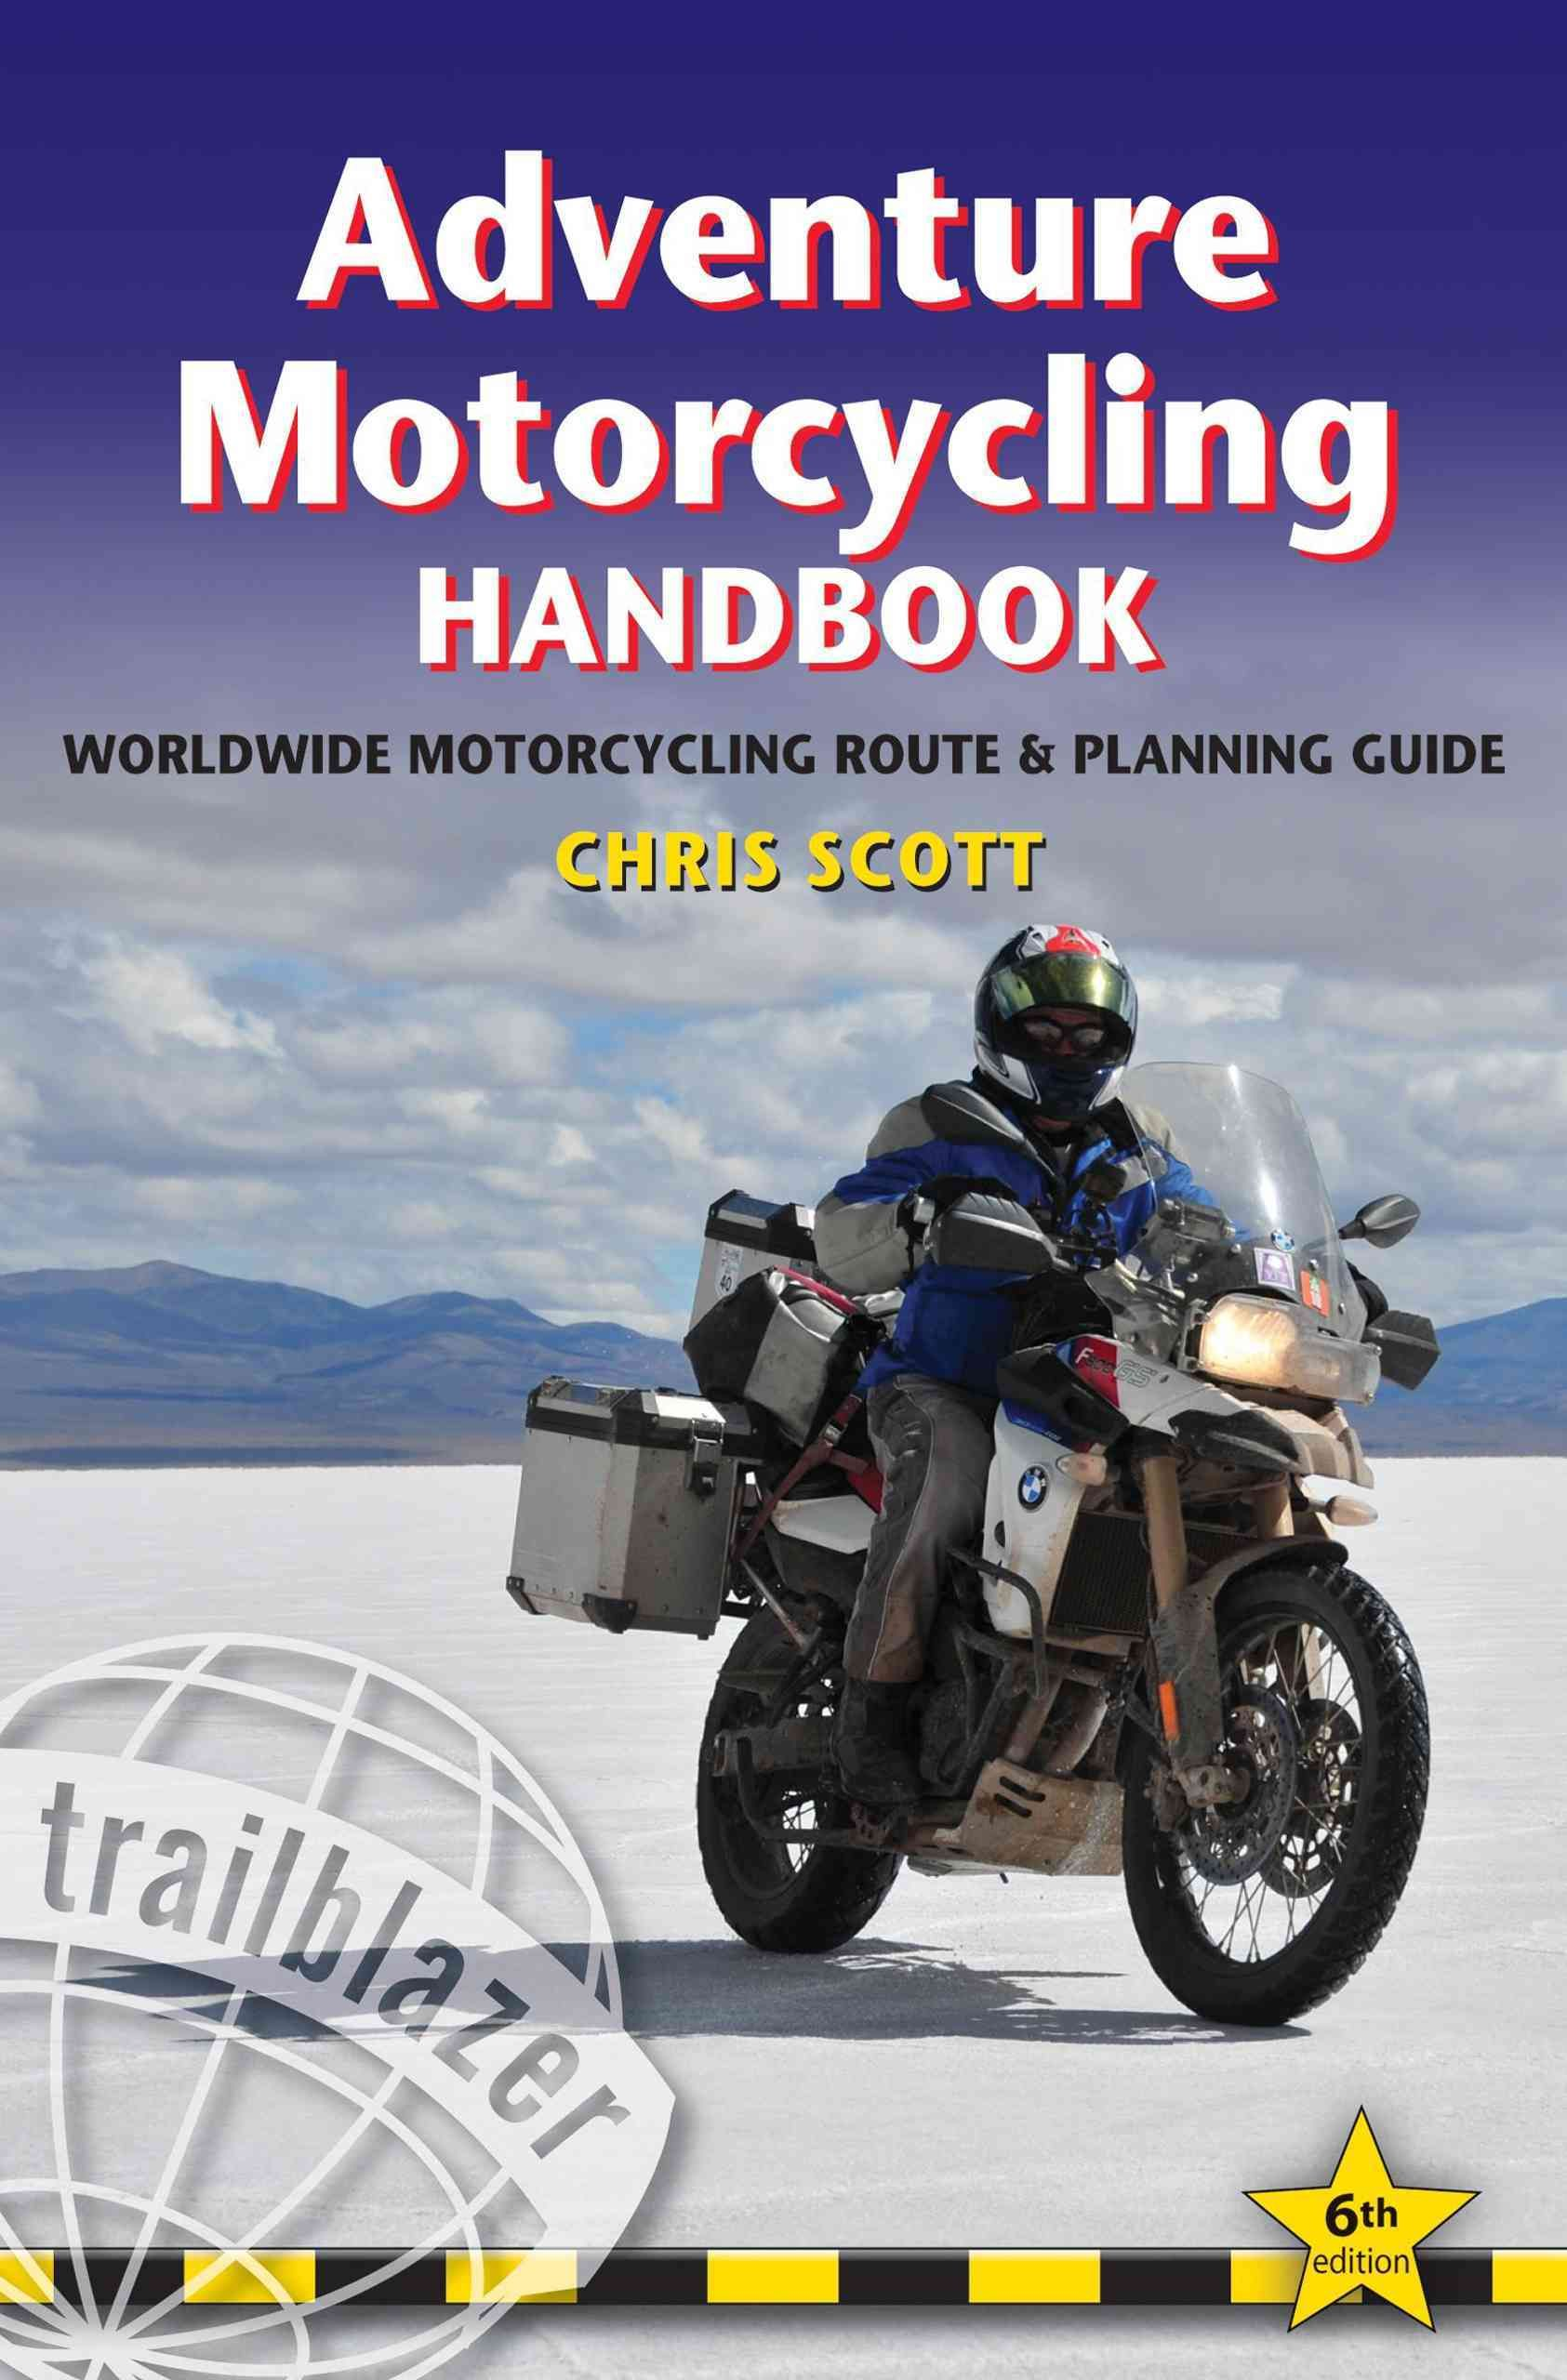 Adventure Motorcycling Handbook A Route And Planning Guide Paperback Overstock Com Shopping The Best Deals On General T Motorcamping Motorfiets Avontuur